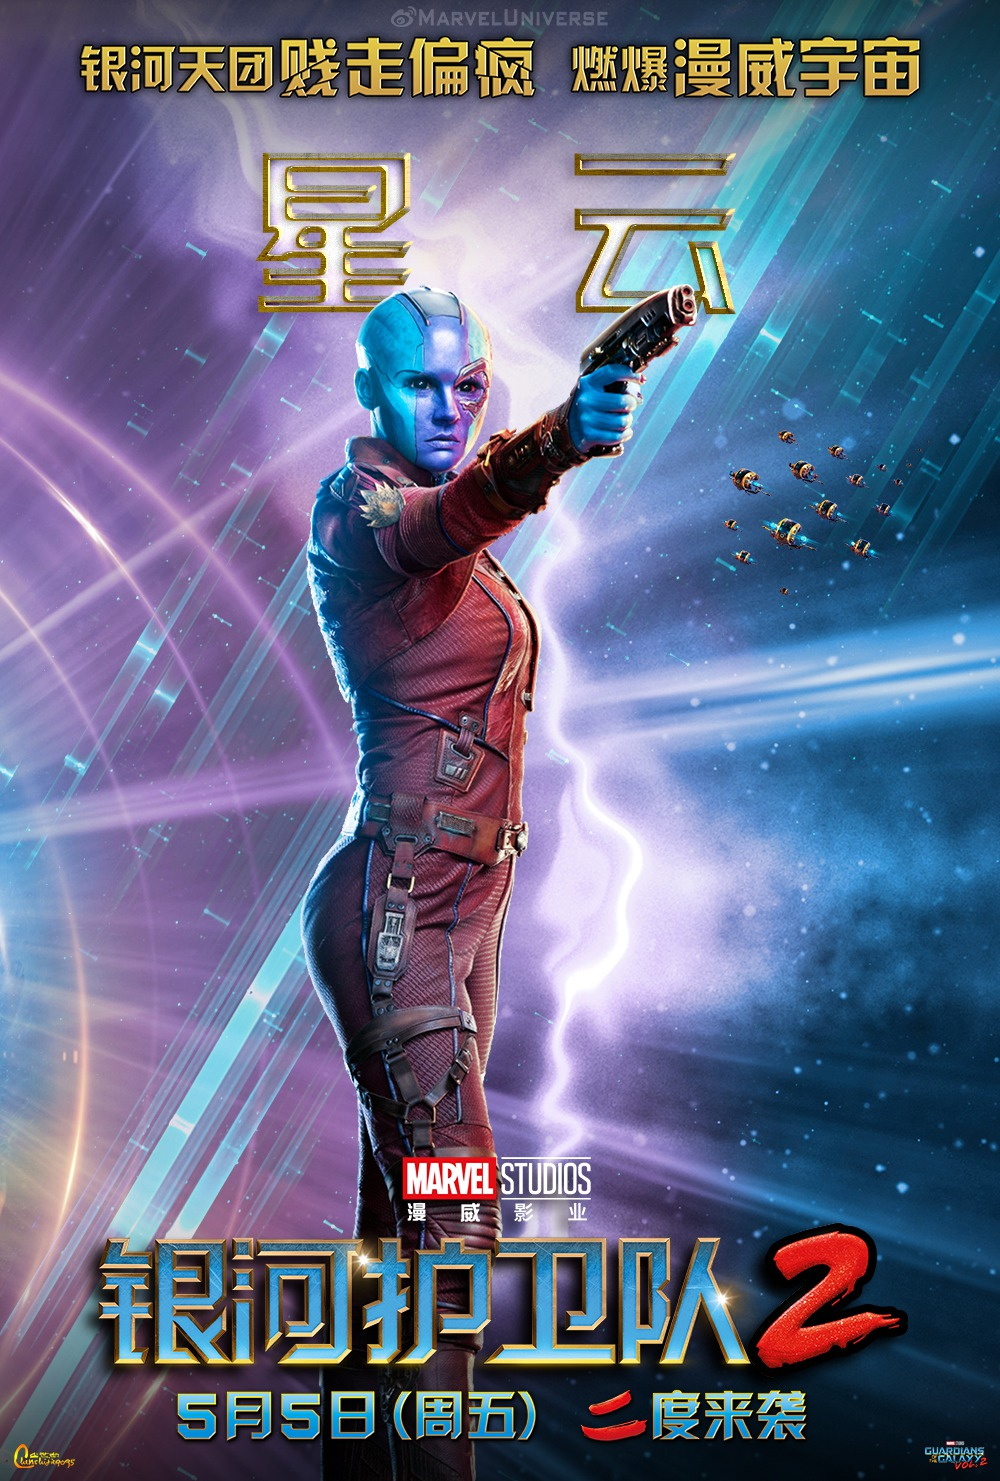 Guardians of the galaxy dvd release date in Perth